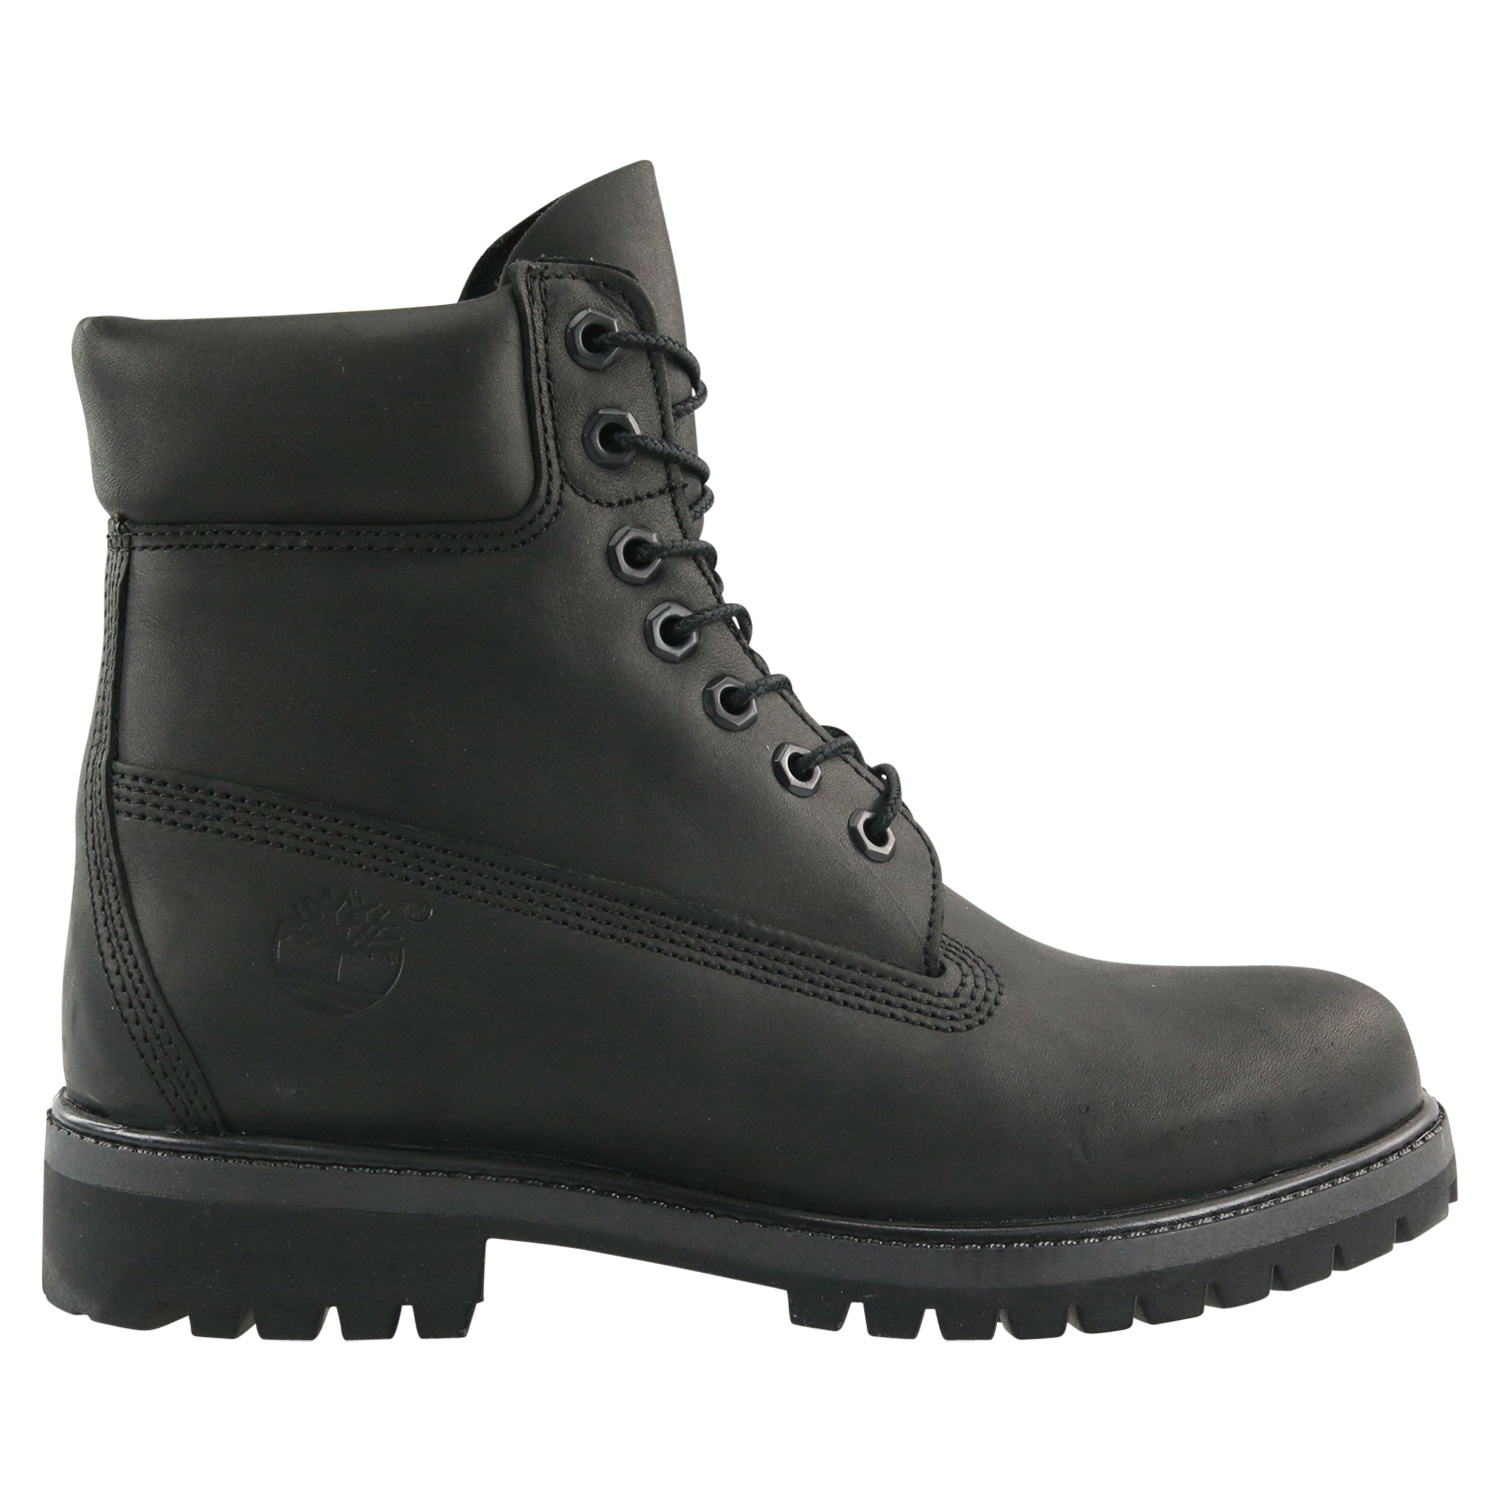 timberland 6 inch premium waterproof boot schuhe stiefel winterstiefel herren ebay. Black Bedroom Furniture Sets. Home Design Ideas